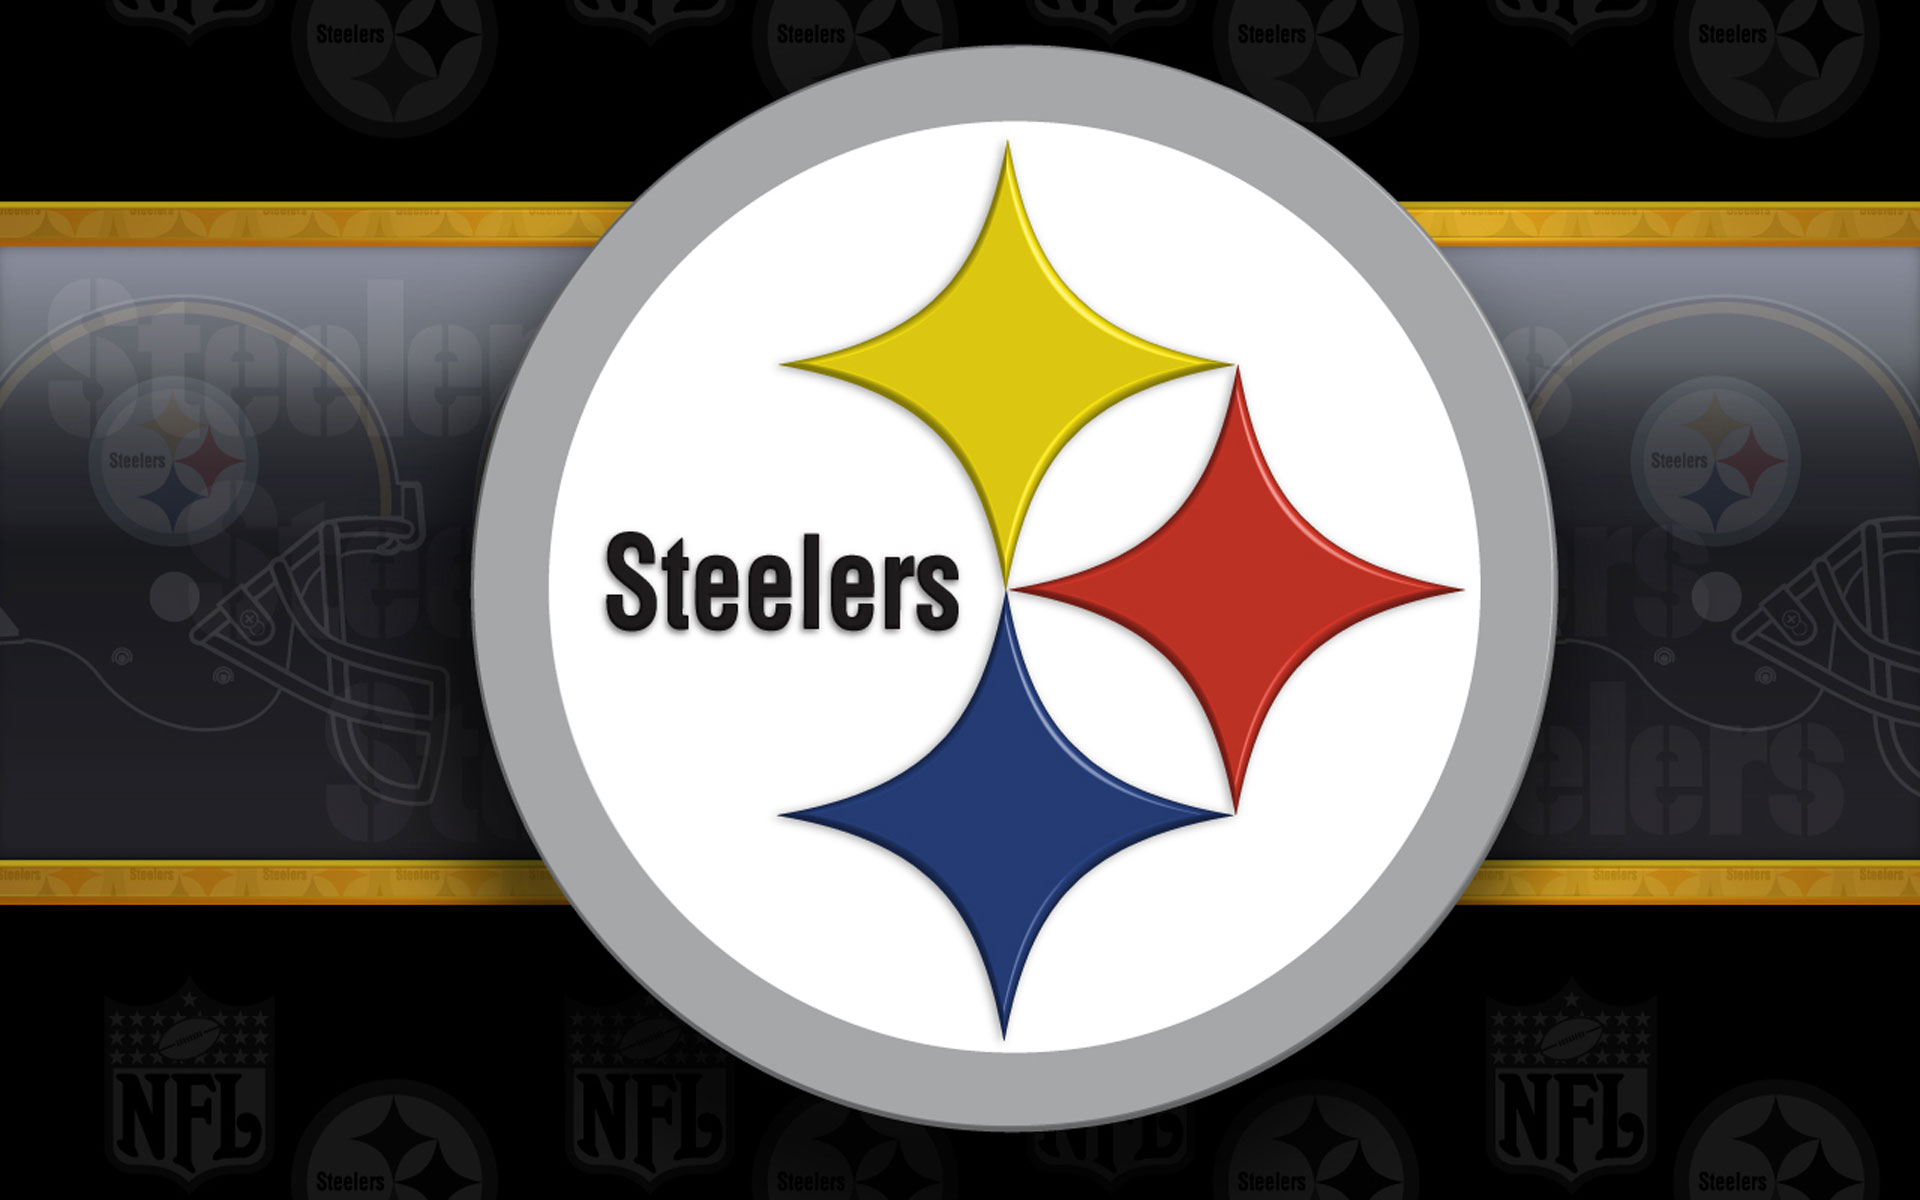 Pittsburgh steelers computer wallpaper 52921 1920x1200 px pittsburgh steelers computer wallpaper 52921 voltagebd Images